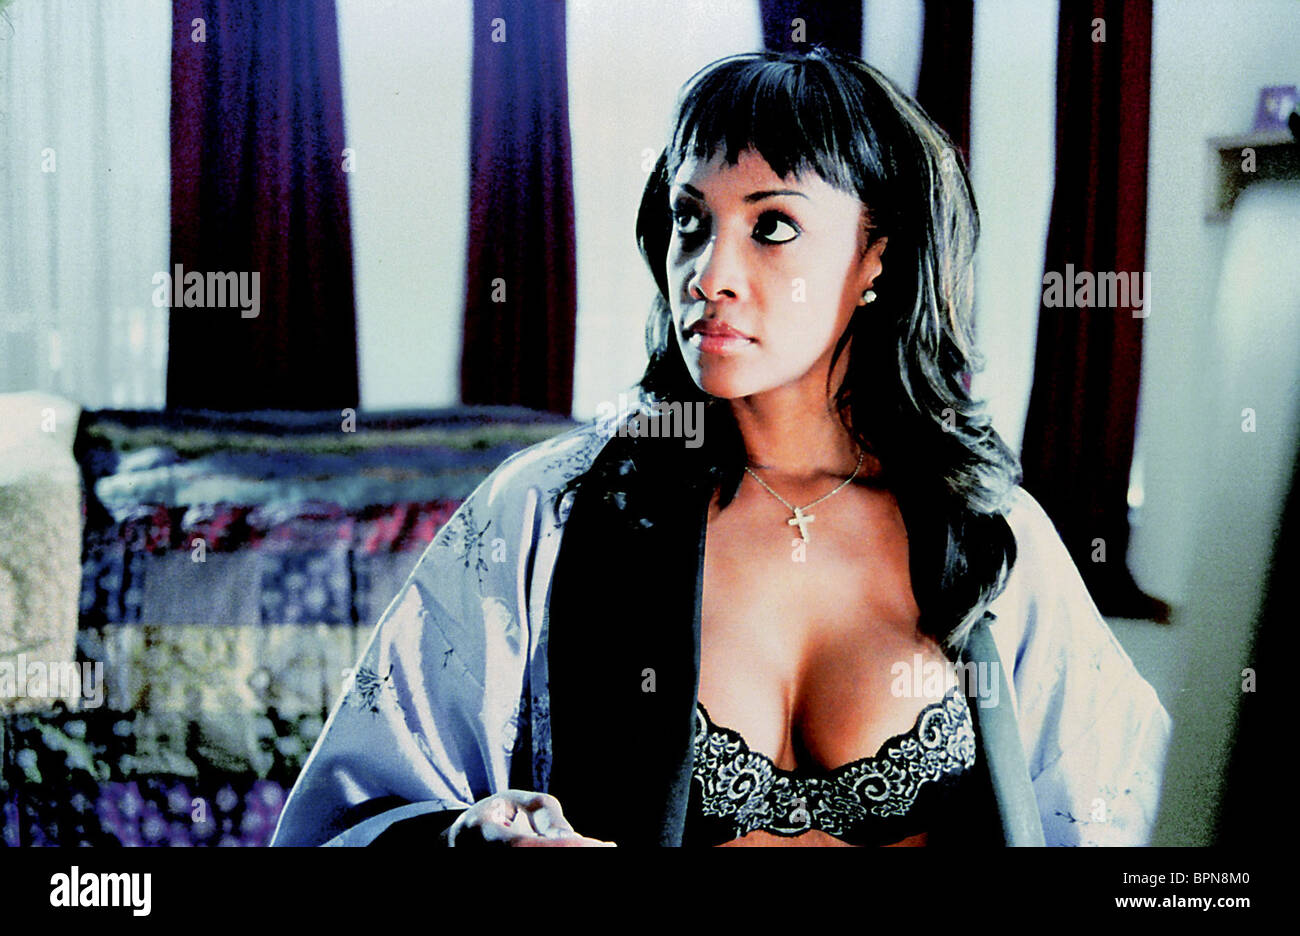 VIVICA A. FOX GETTING PLAYED (2005) - Stock Image